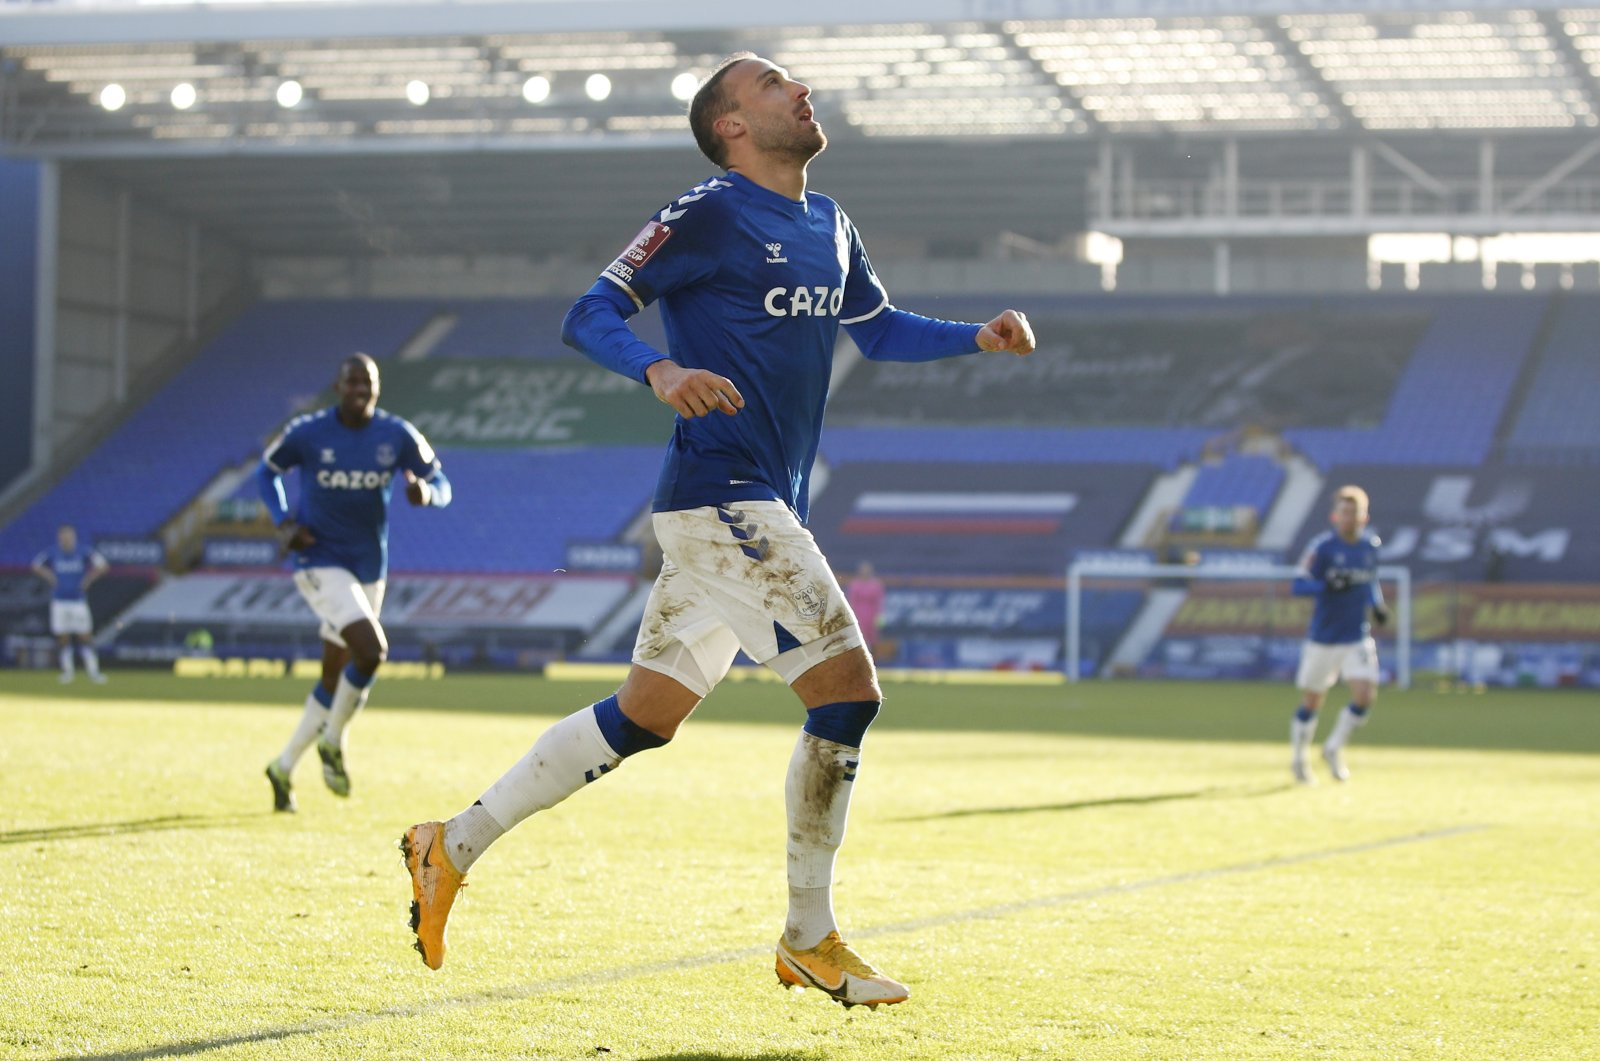 Everton's Cenk Tosun celebrates scoring a goal that is later disallowed during FA Cup Third Round match against Rotherham United at Goodison Park, Liverpool, Britain, Jan. 9, 2021. (Reuters Photo)